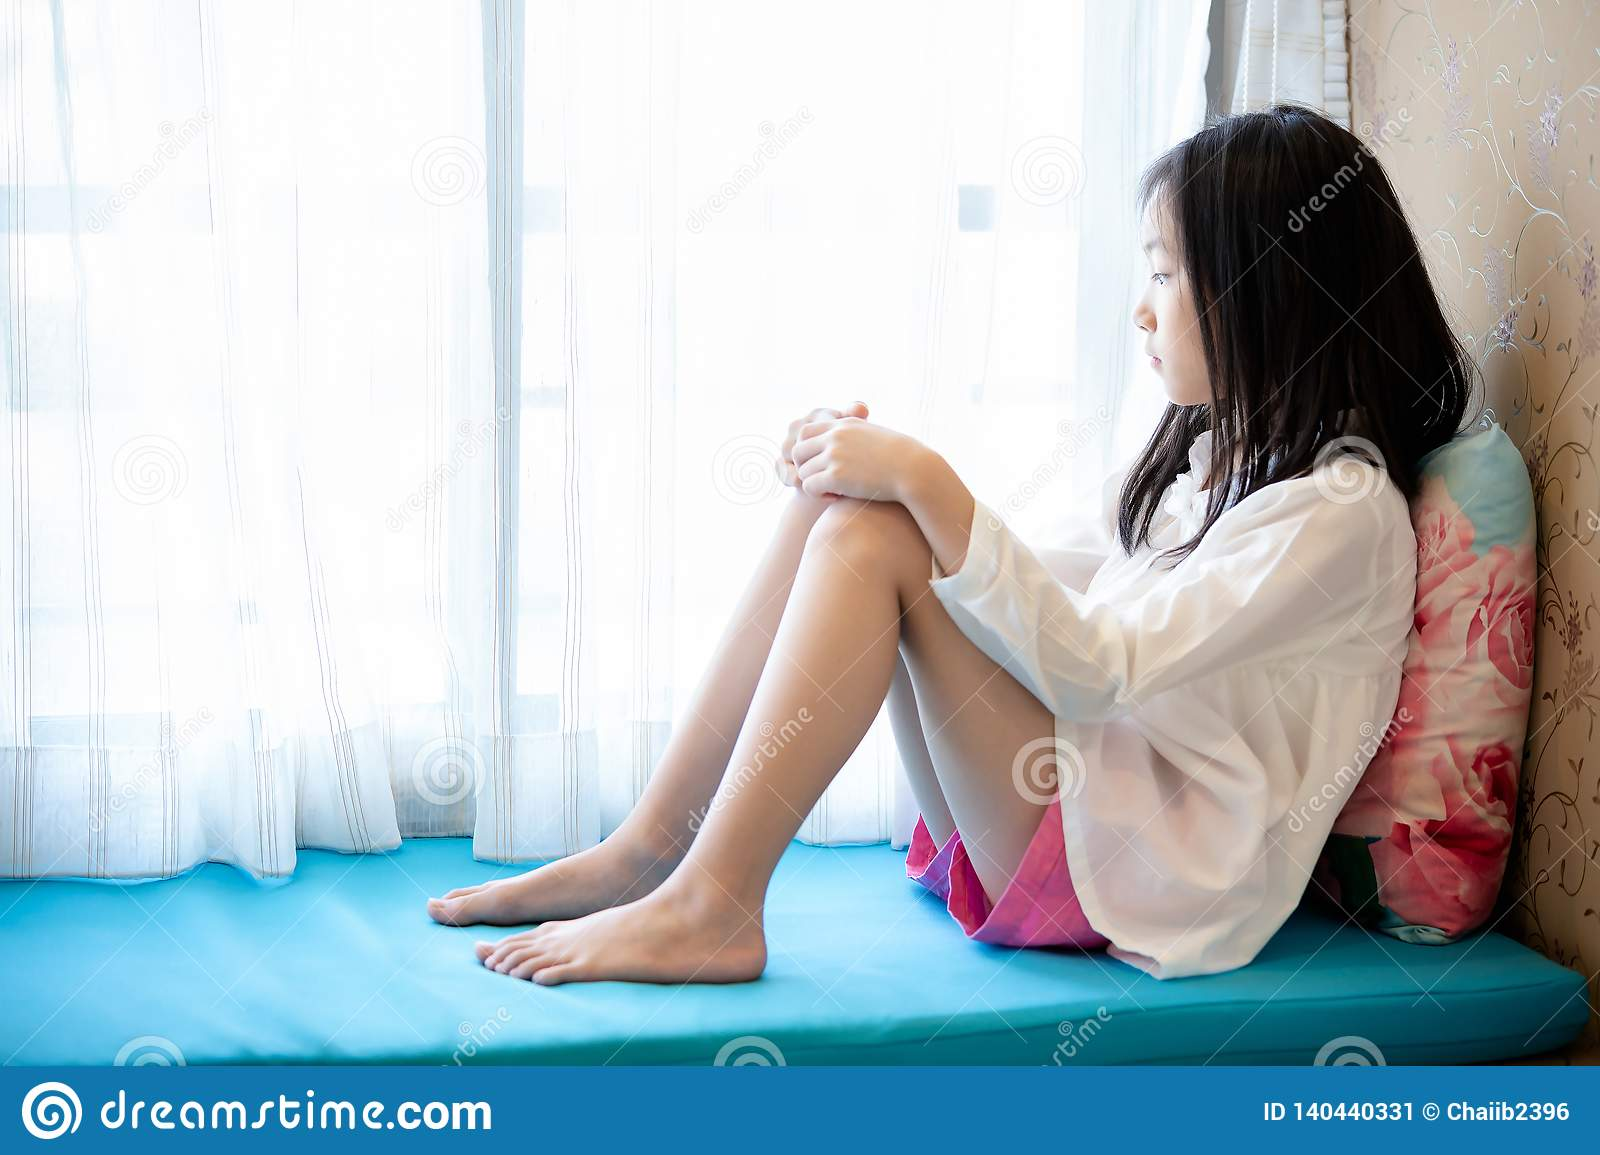 Asian girl waiting,sitting and looking at the window in home